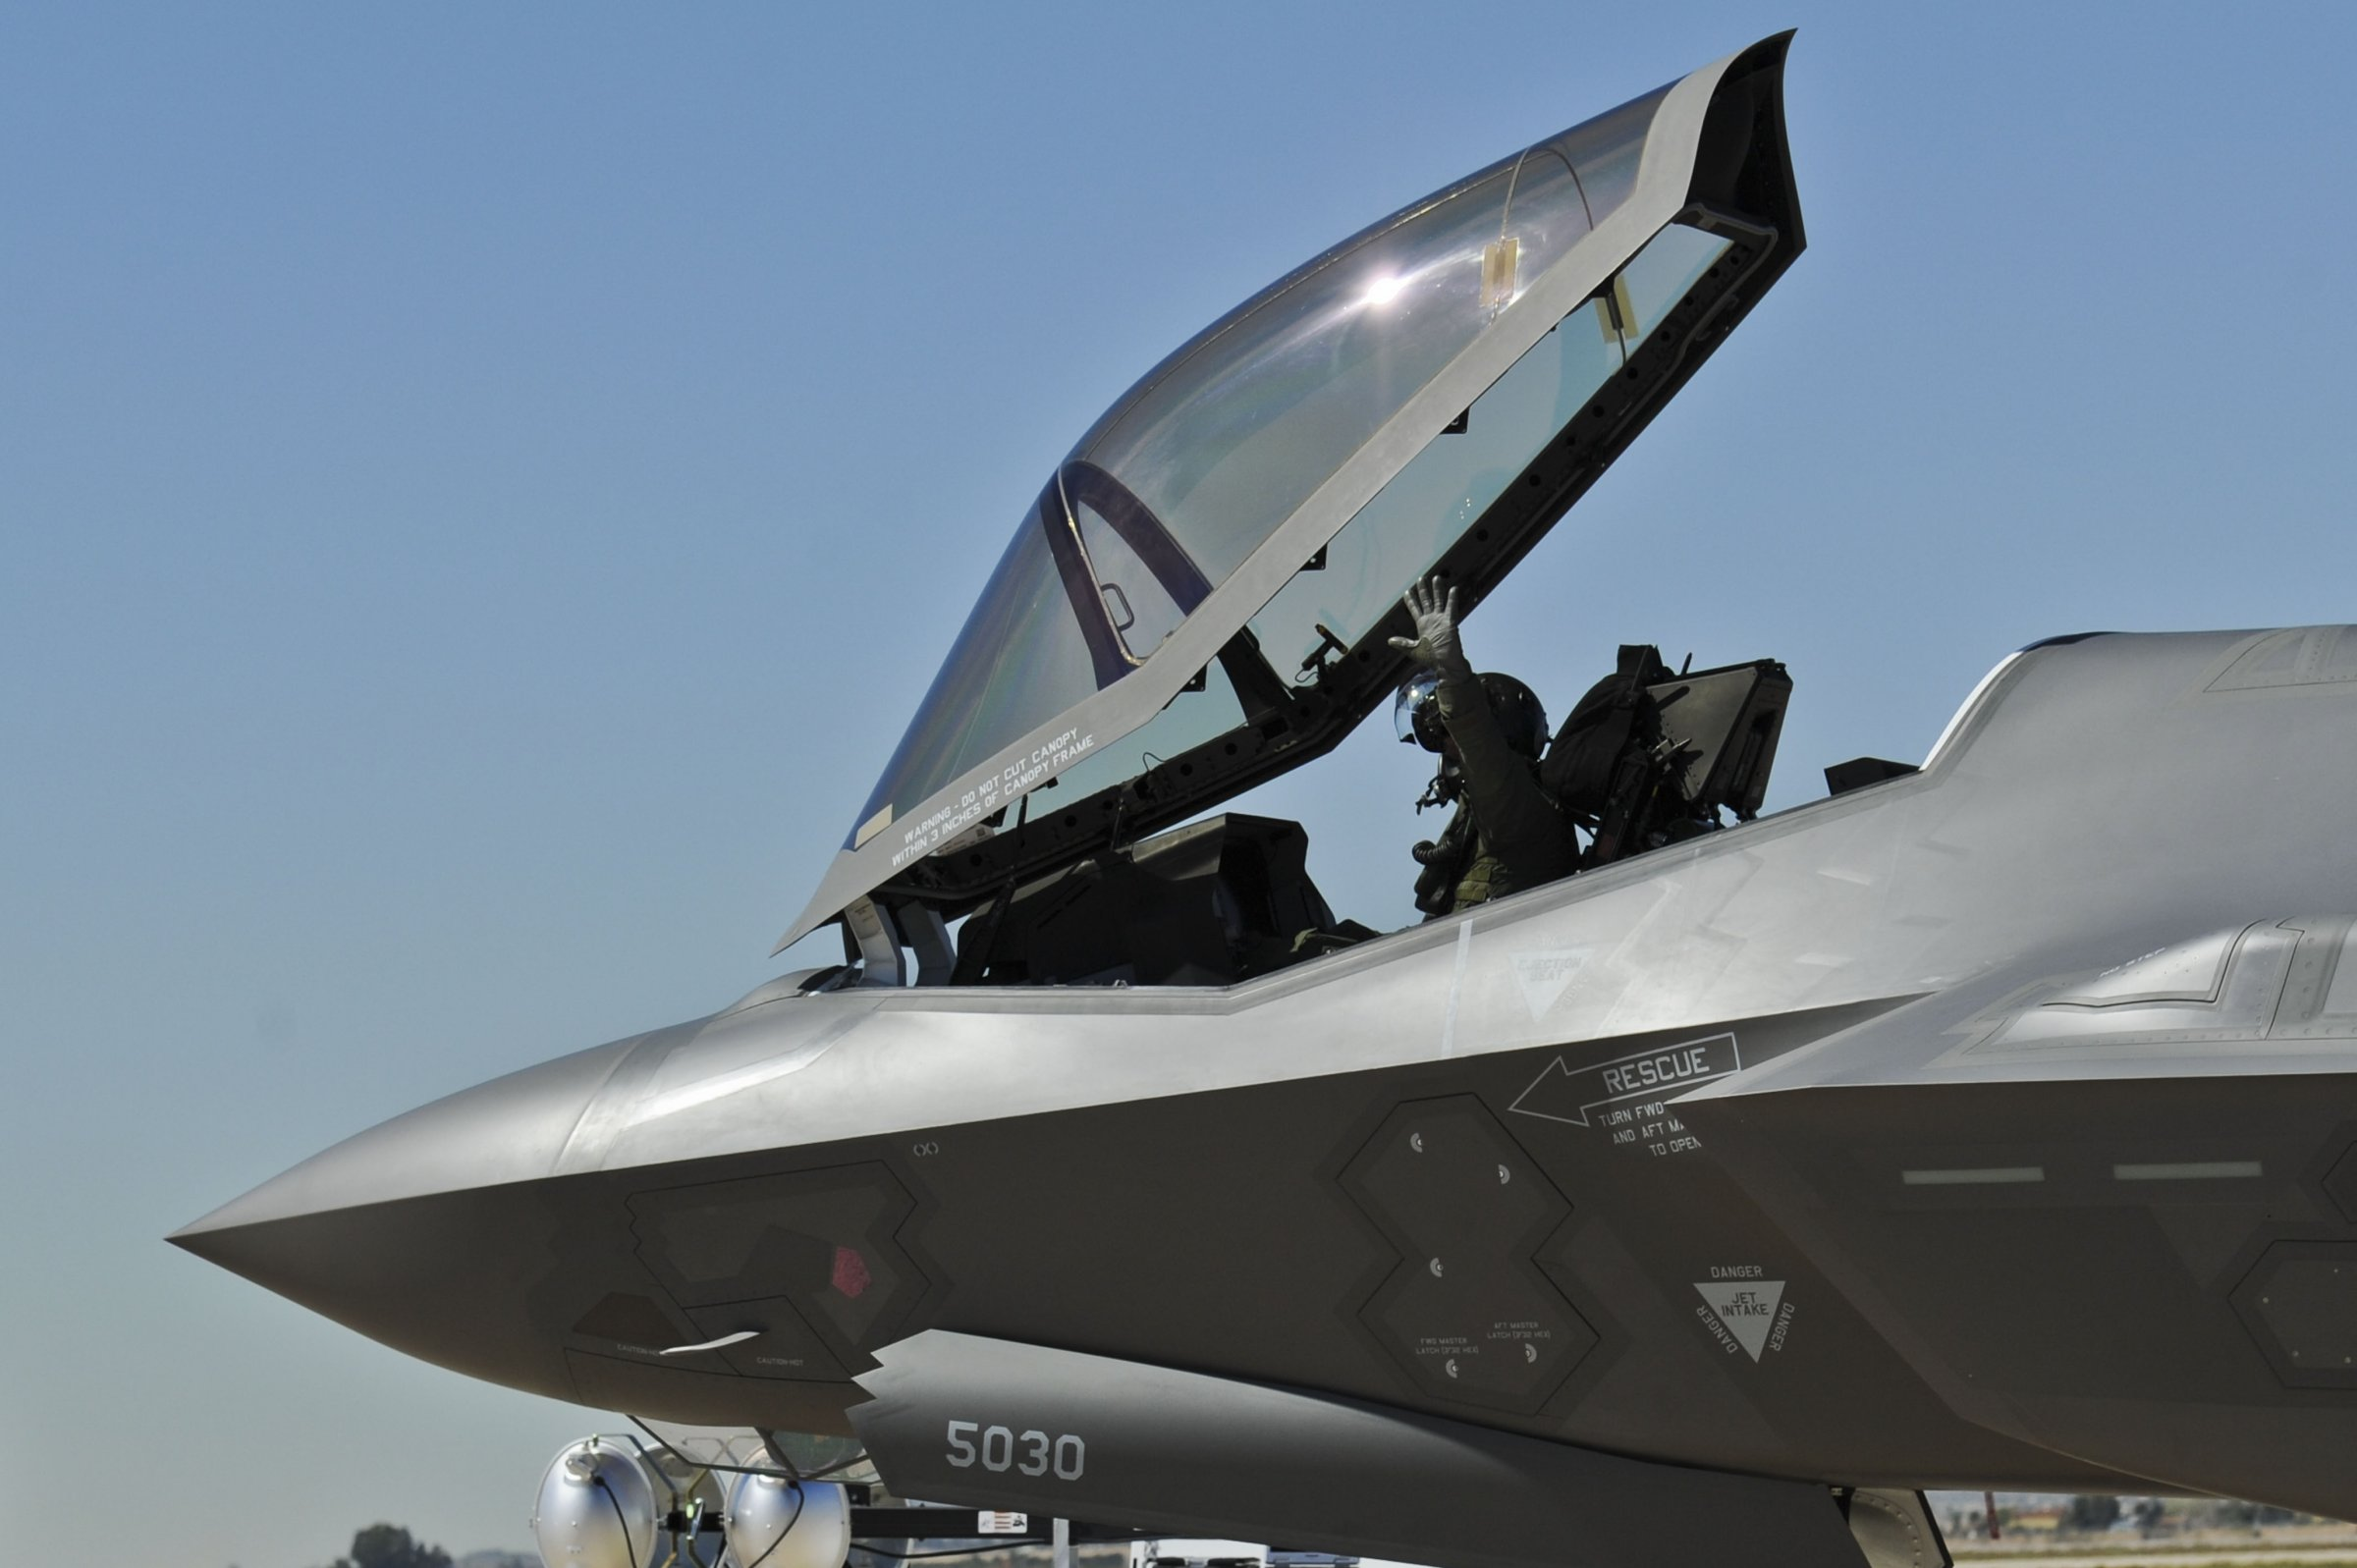 How China's stealthy new J-20 fighter jet compares to the